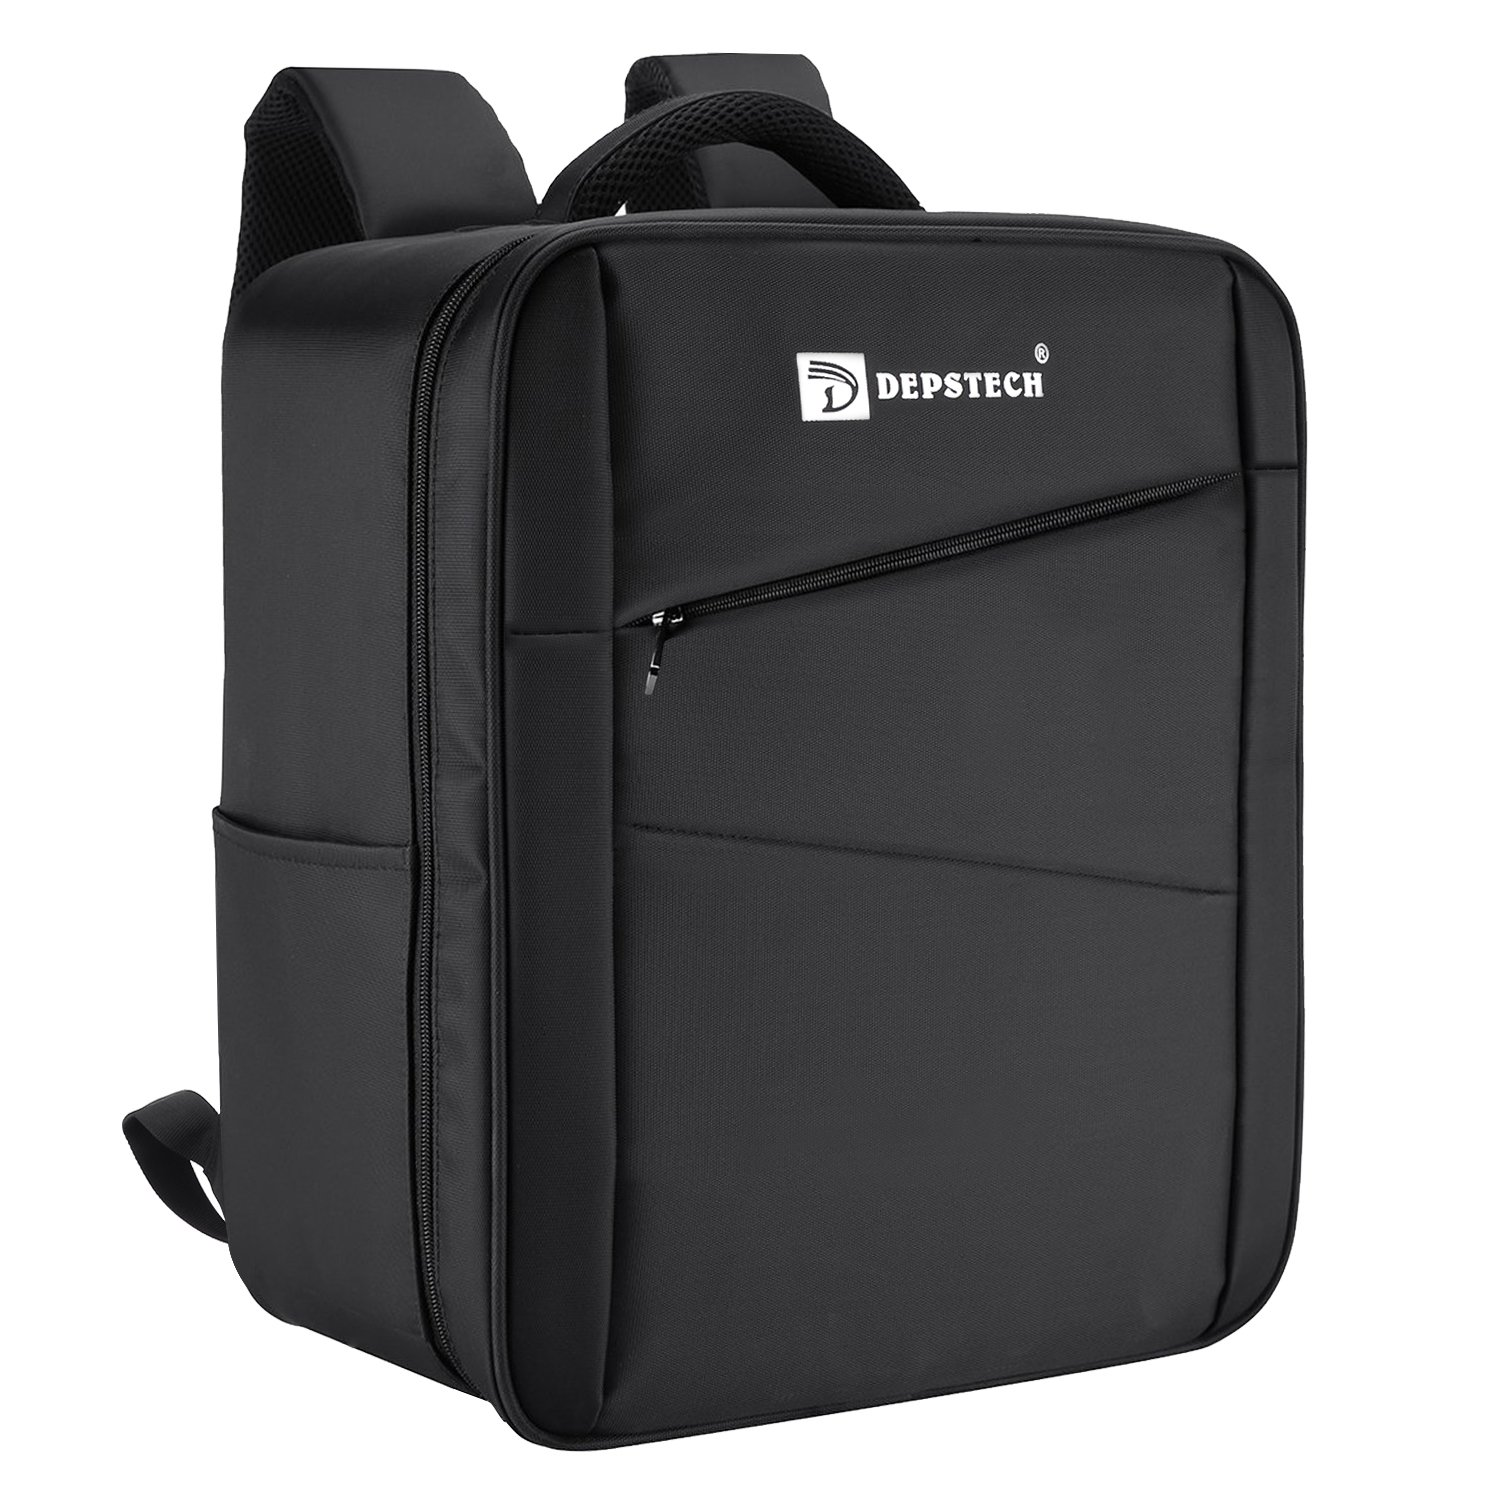 Depstech Upgraded Waterproof Carrying Bag Traveling Backpack Case for DJI Phantom 3 Professional, Advanced, 4K Quadcopter Drone and Accessories- Black